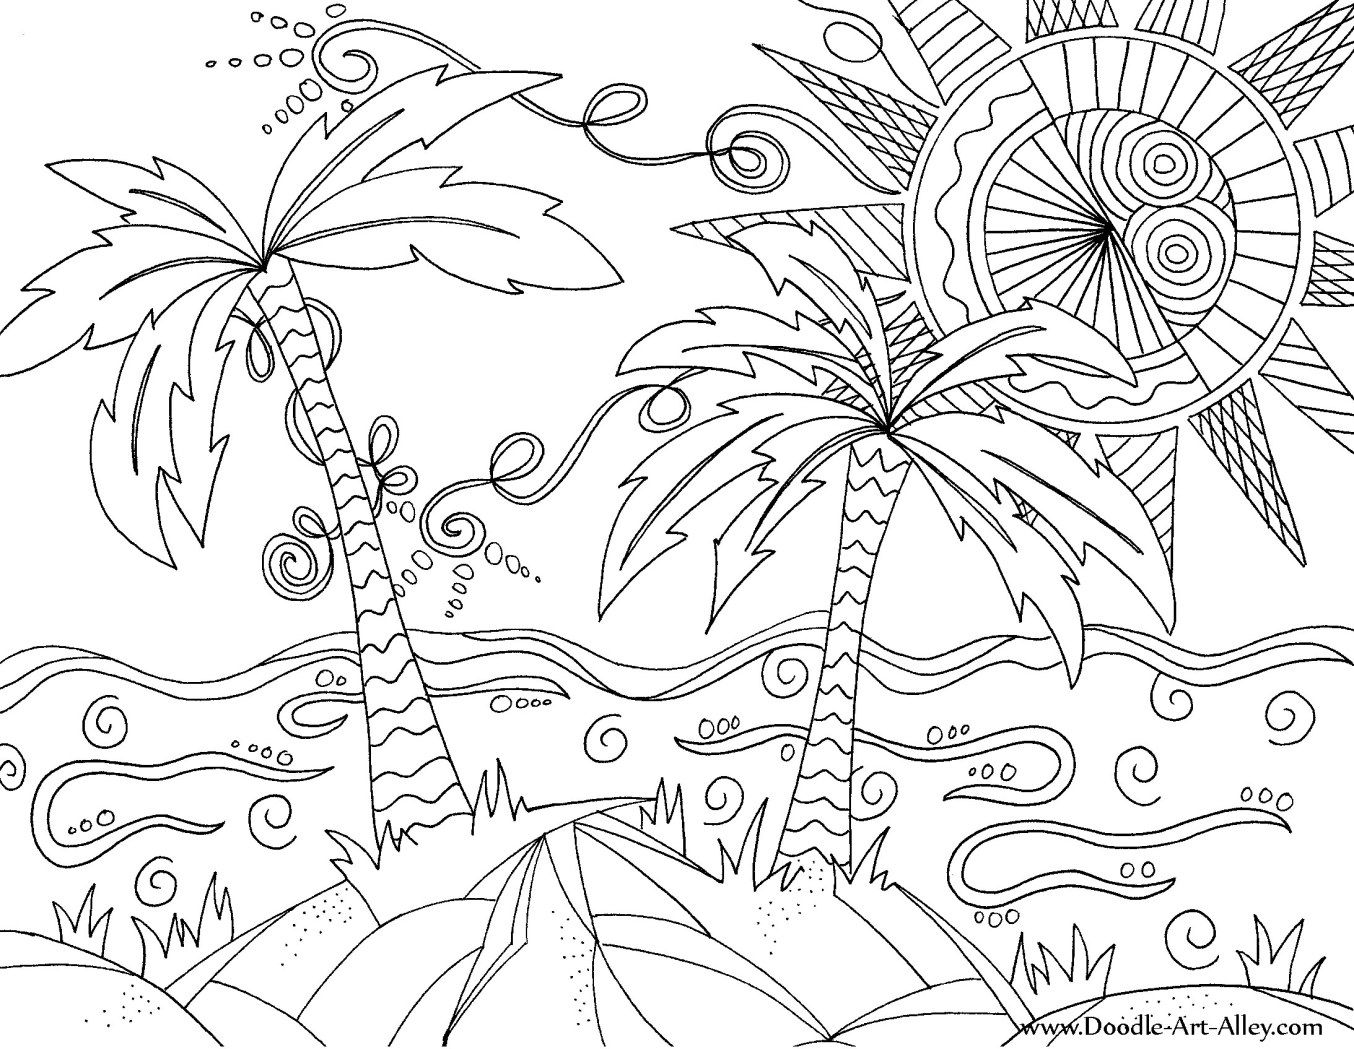 Printable coloring pages beach theme - Doodle Art Alley Scads Of Free Printable Colouring Sheets Numerous Themes Like Seasons